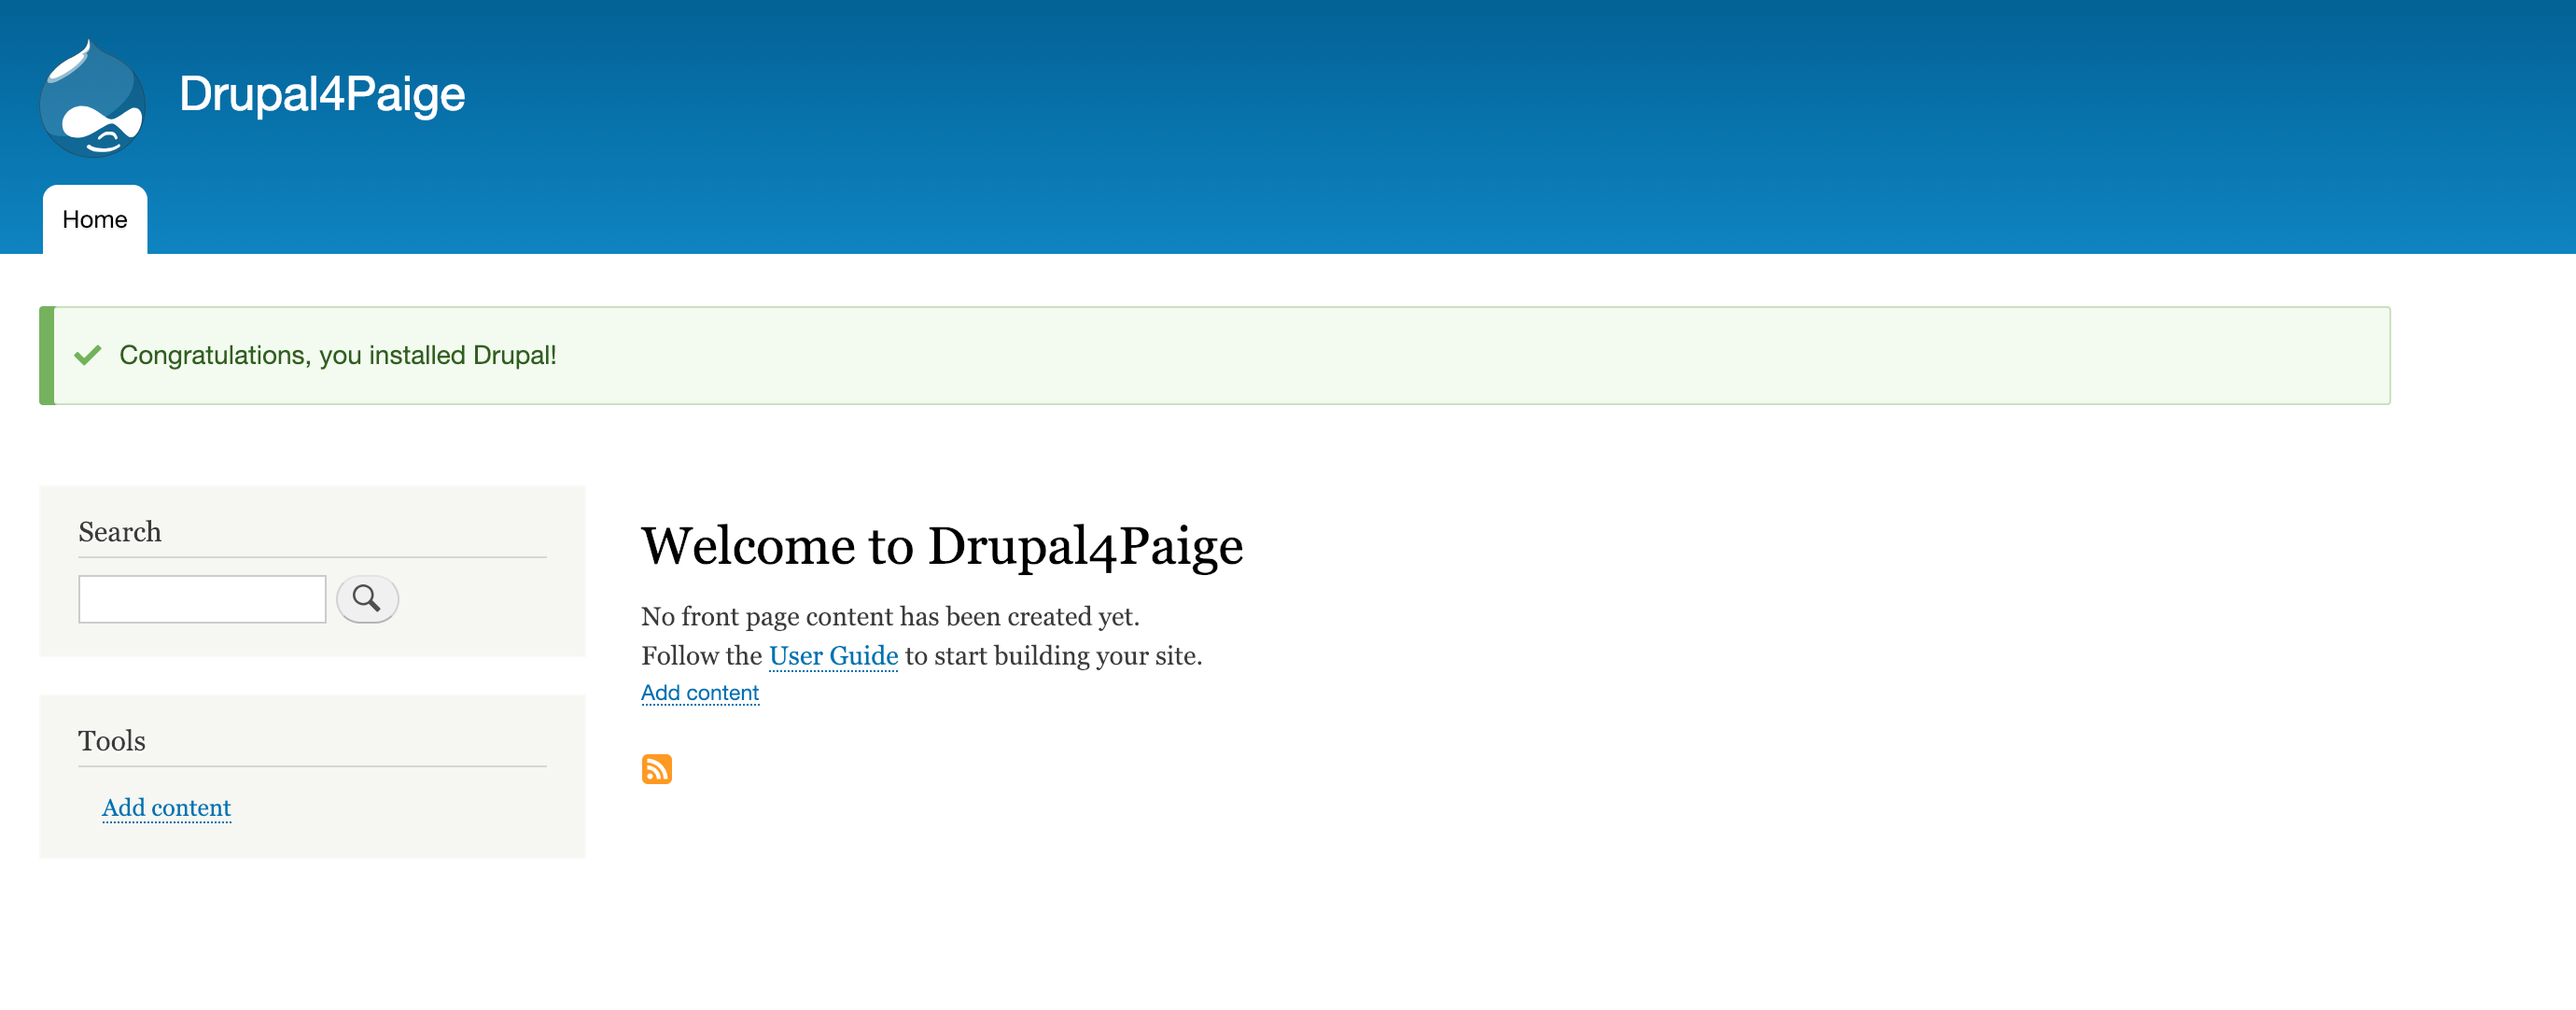 Drupal Homepage Screenshot